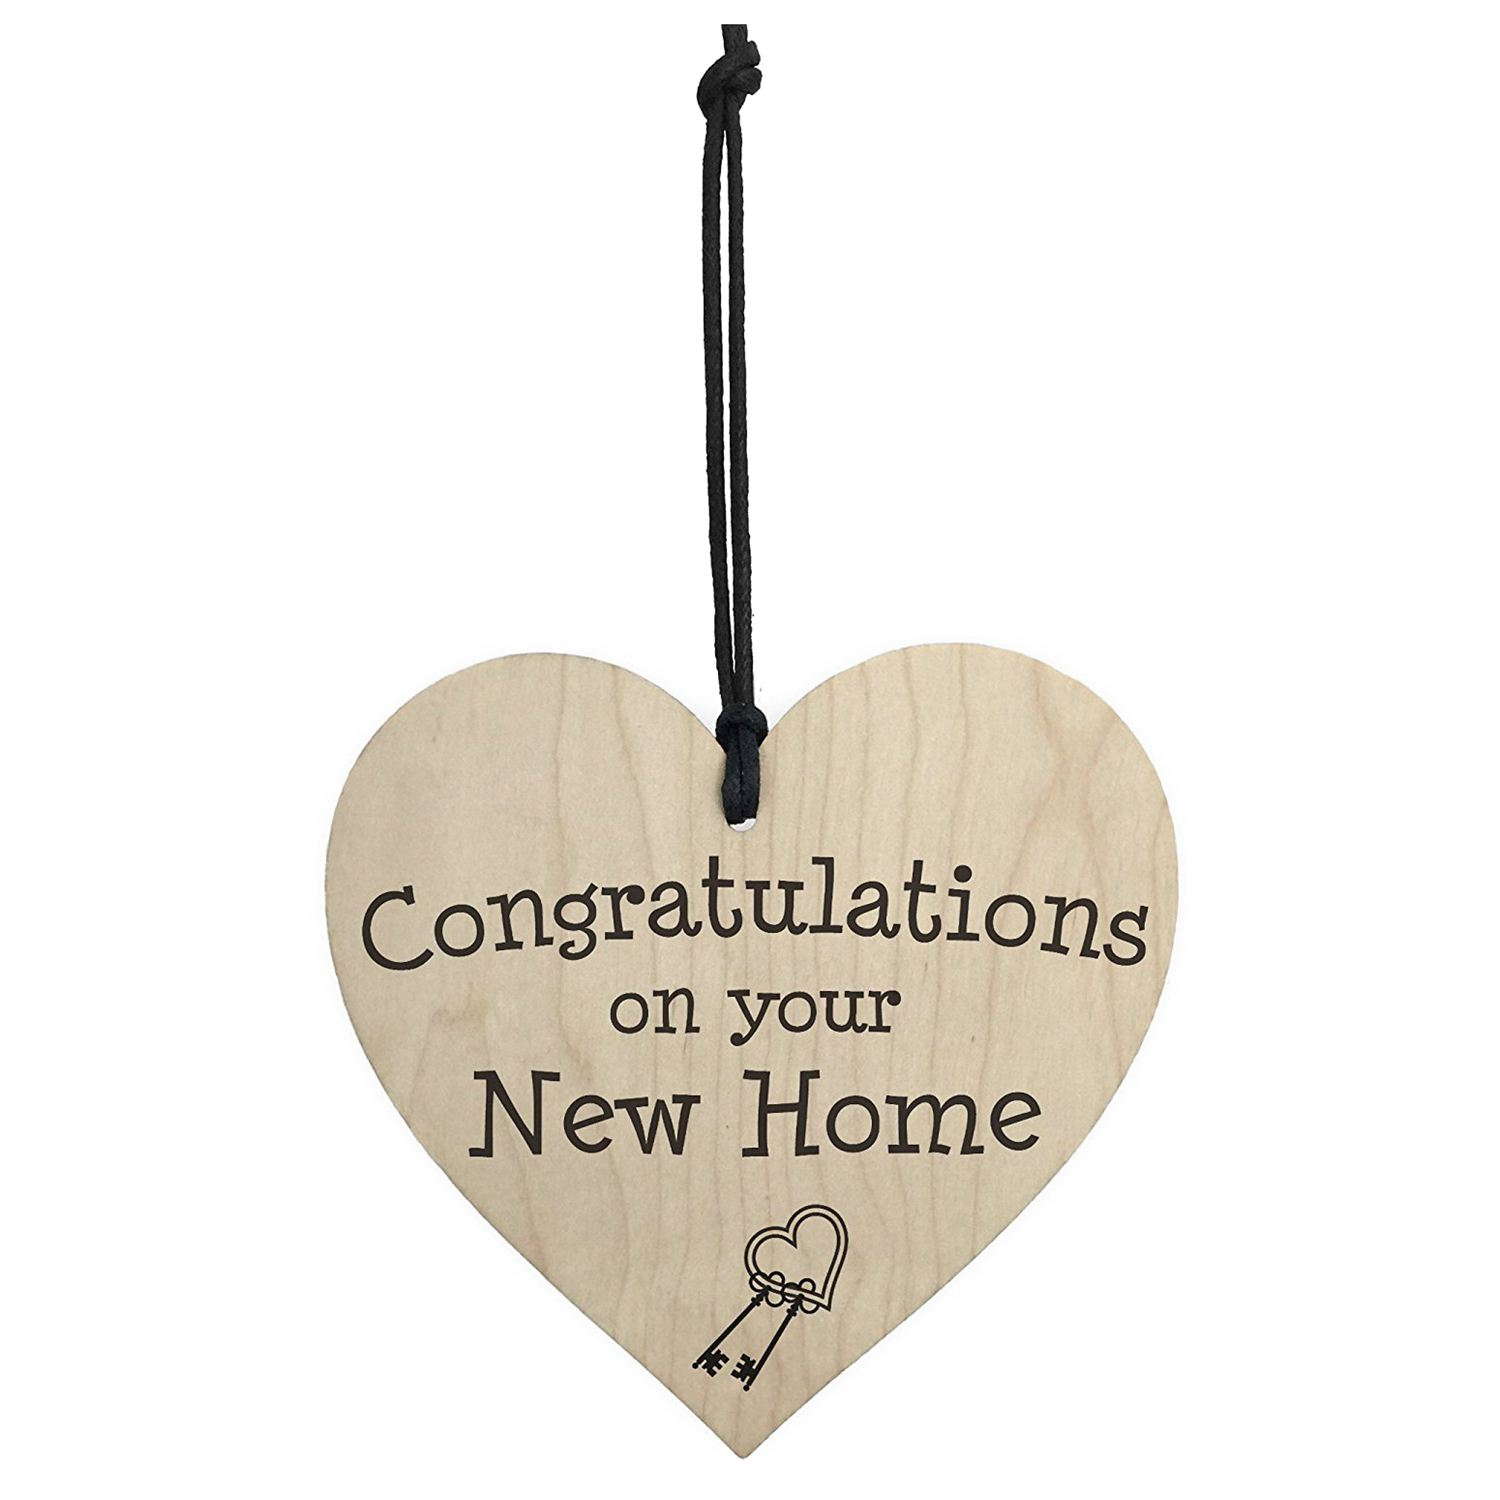 HOT SALE Congratulations On Your New Home Wooden Hanging Heart Plaque Moving In Present